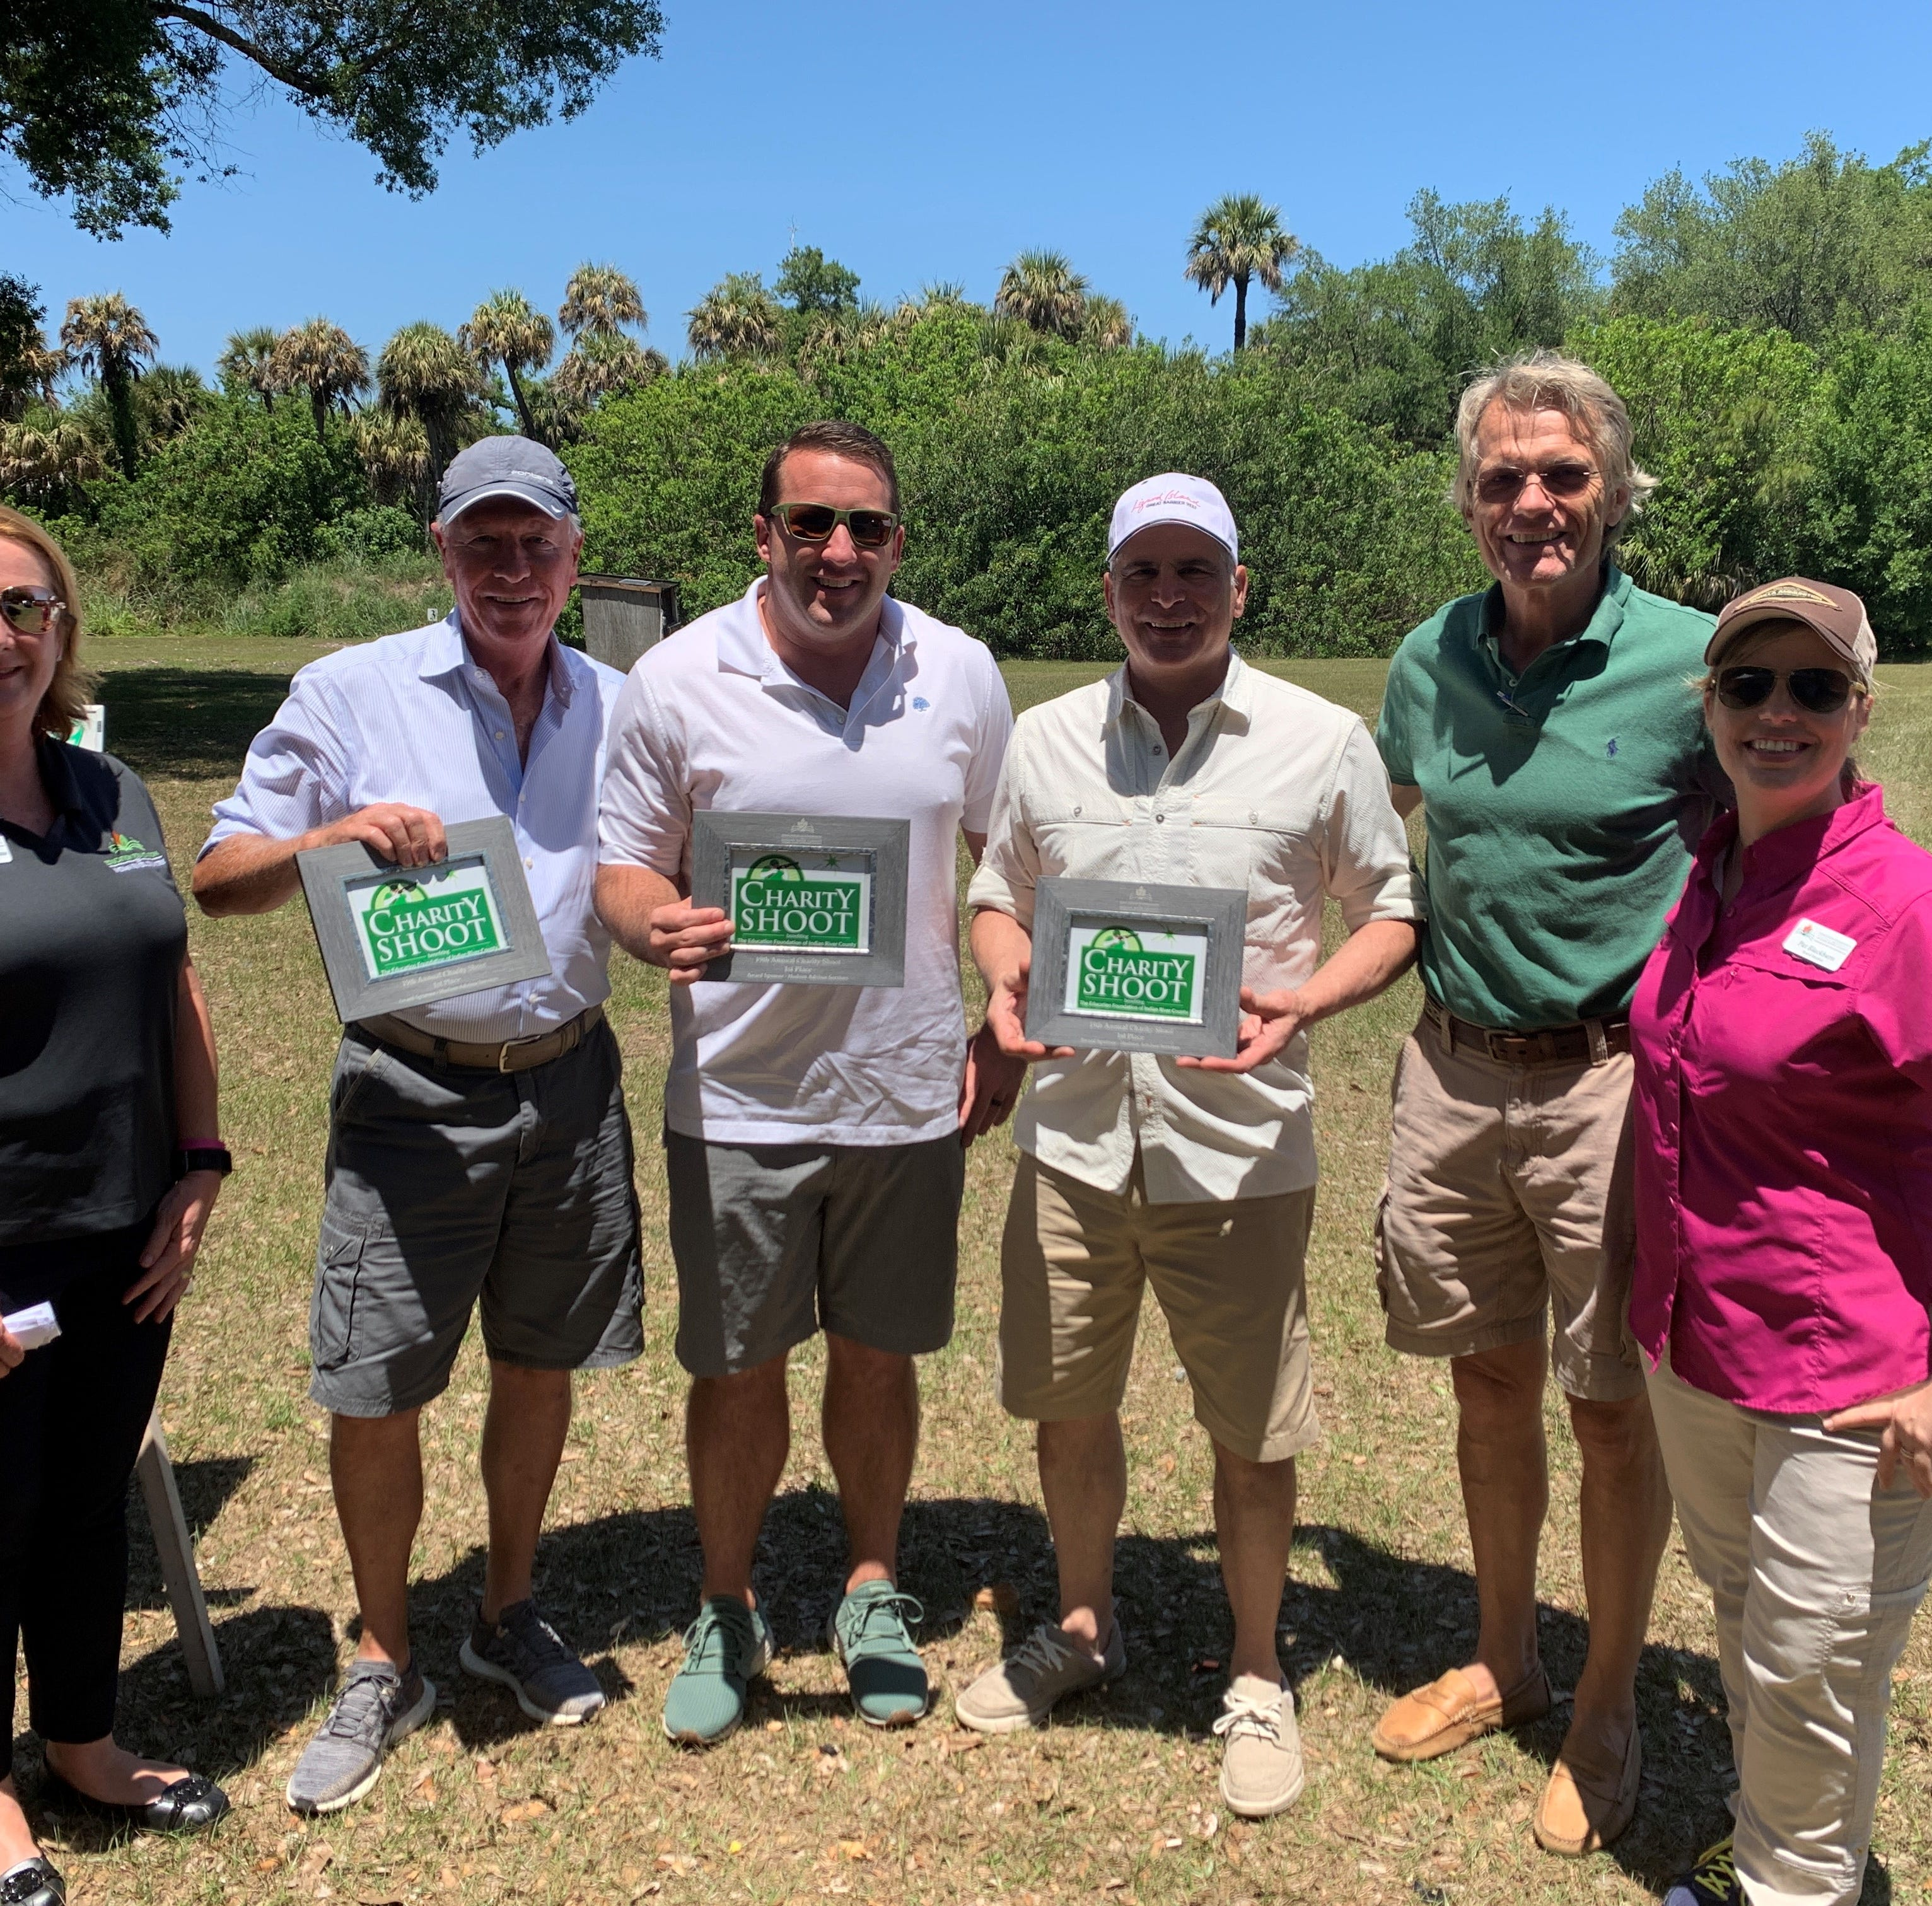 Indian River County Education Foundation Charity Shoot successfully targets support for students